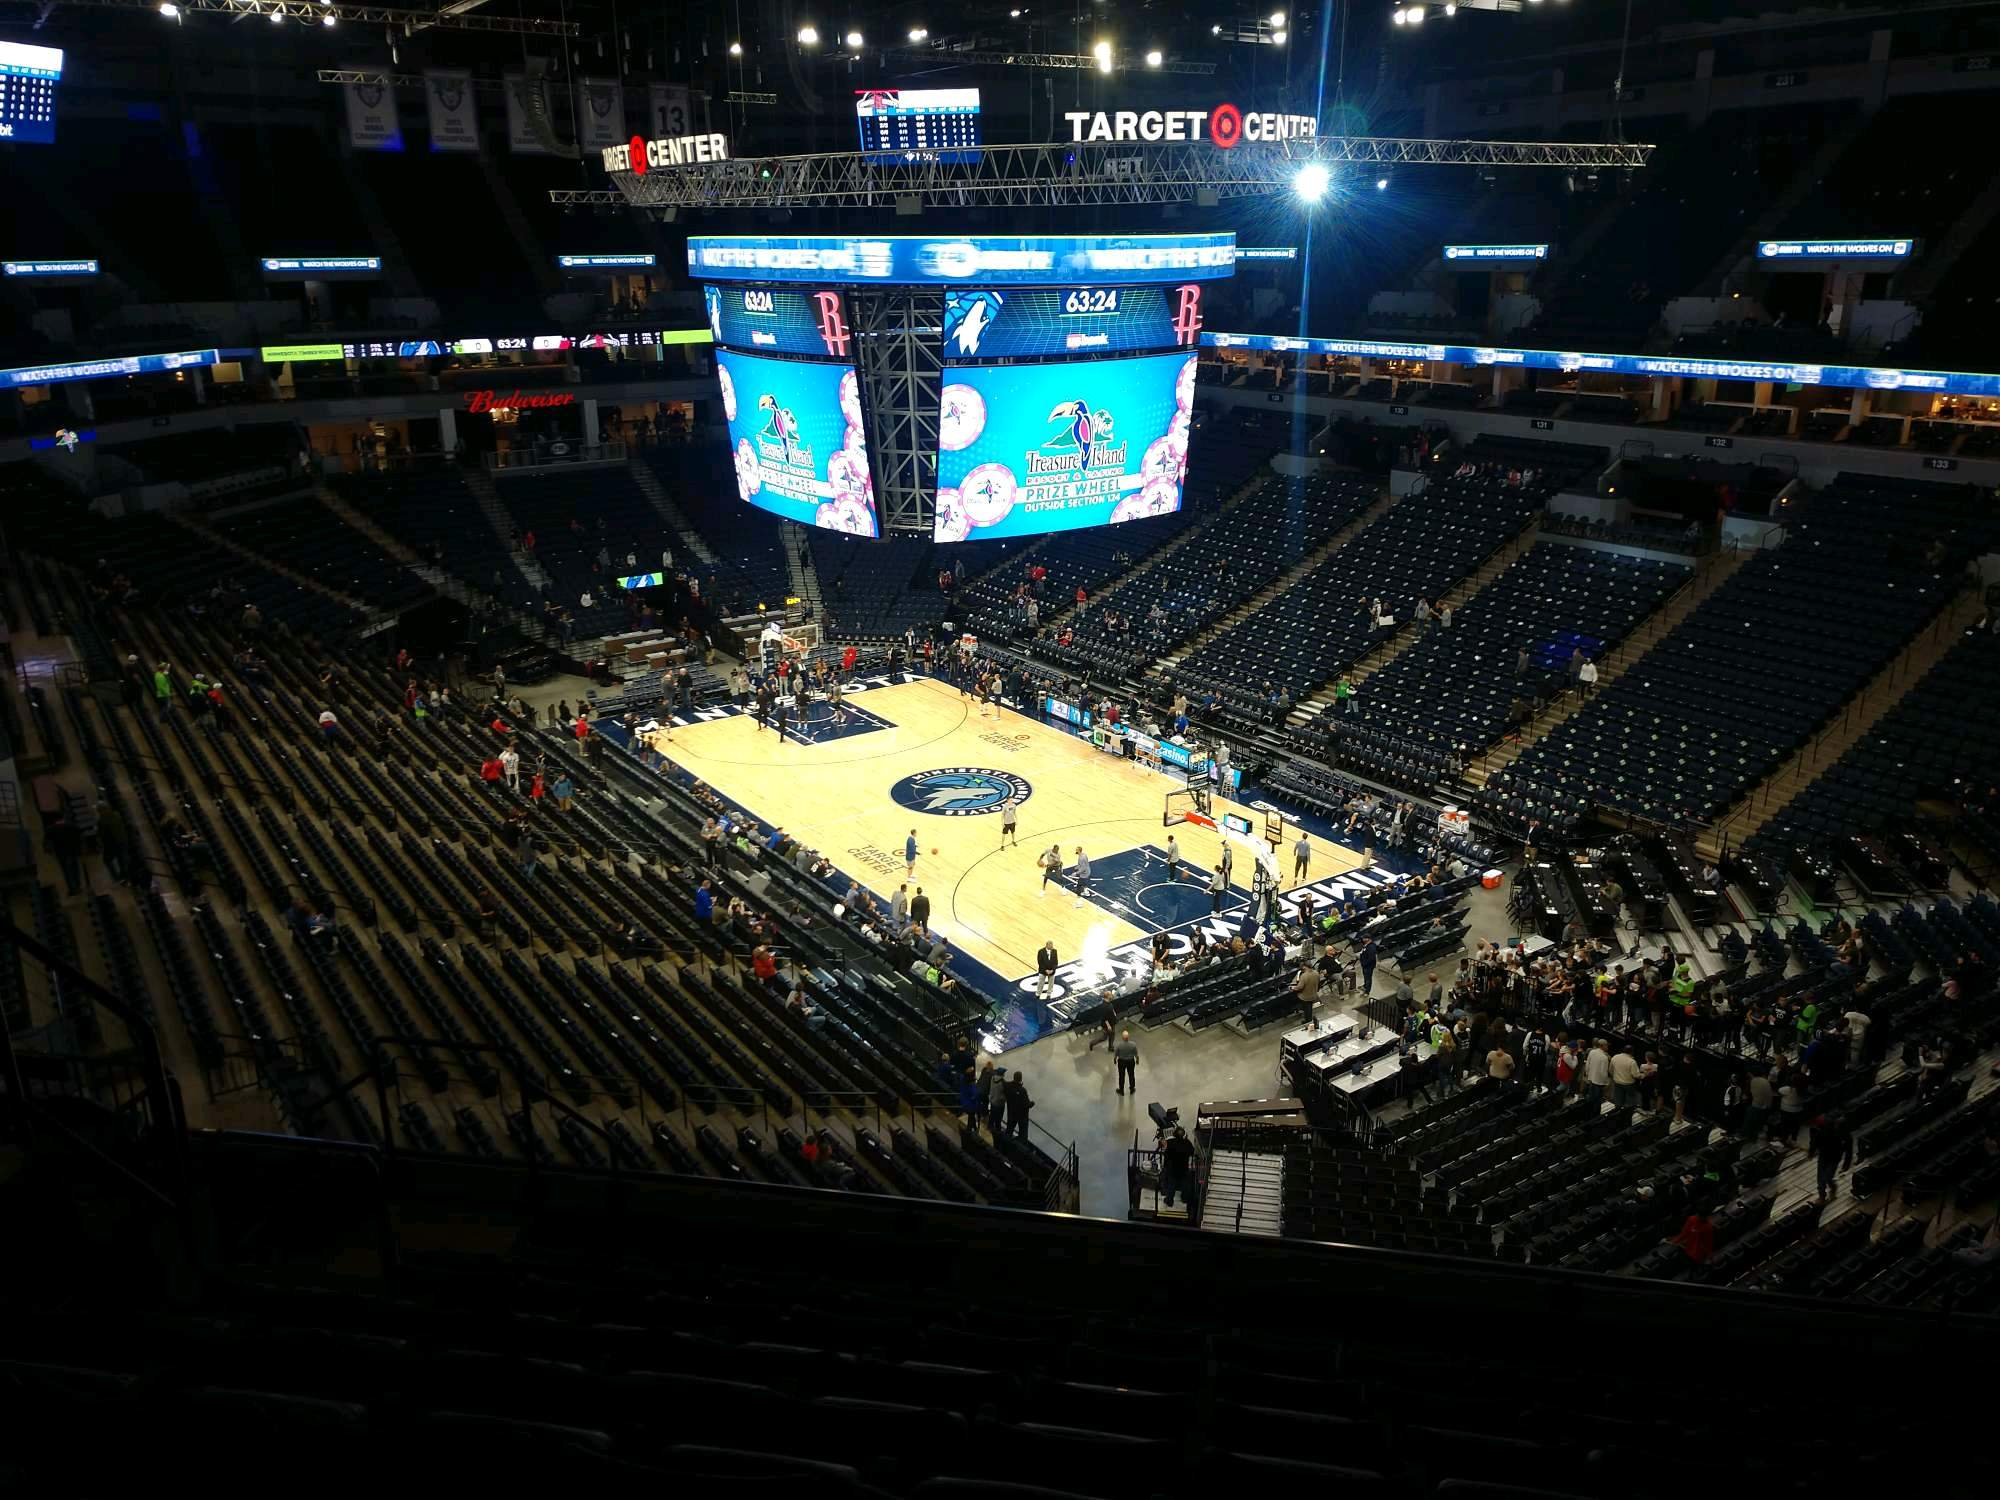 Target Center Section 205 Row J Seat 7